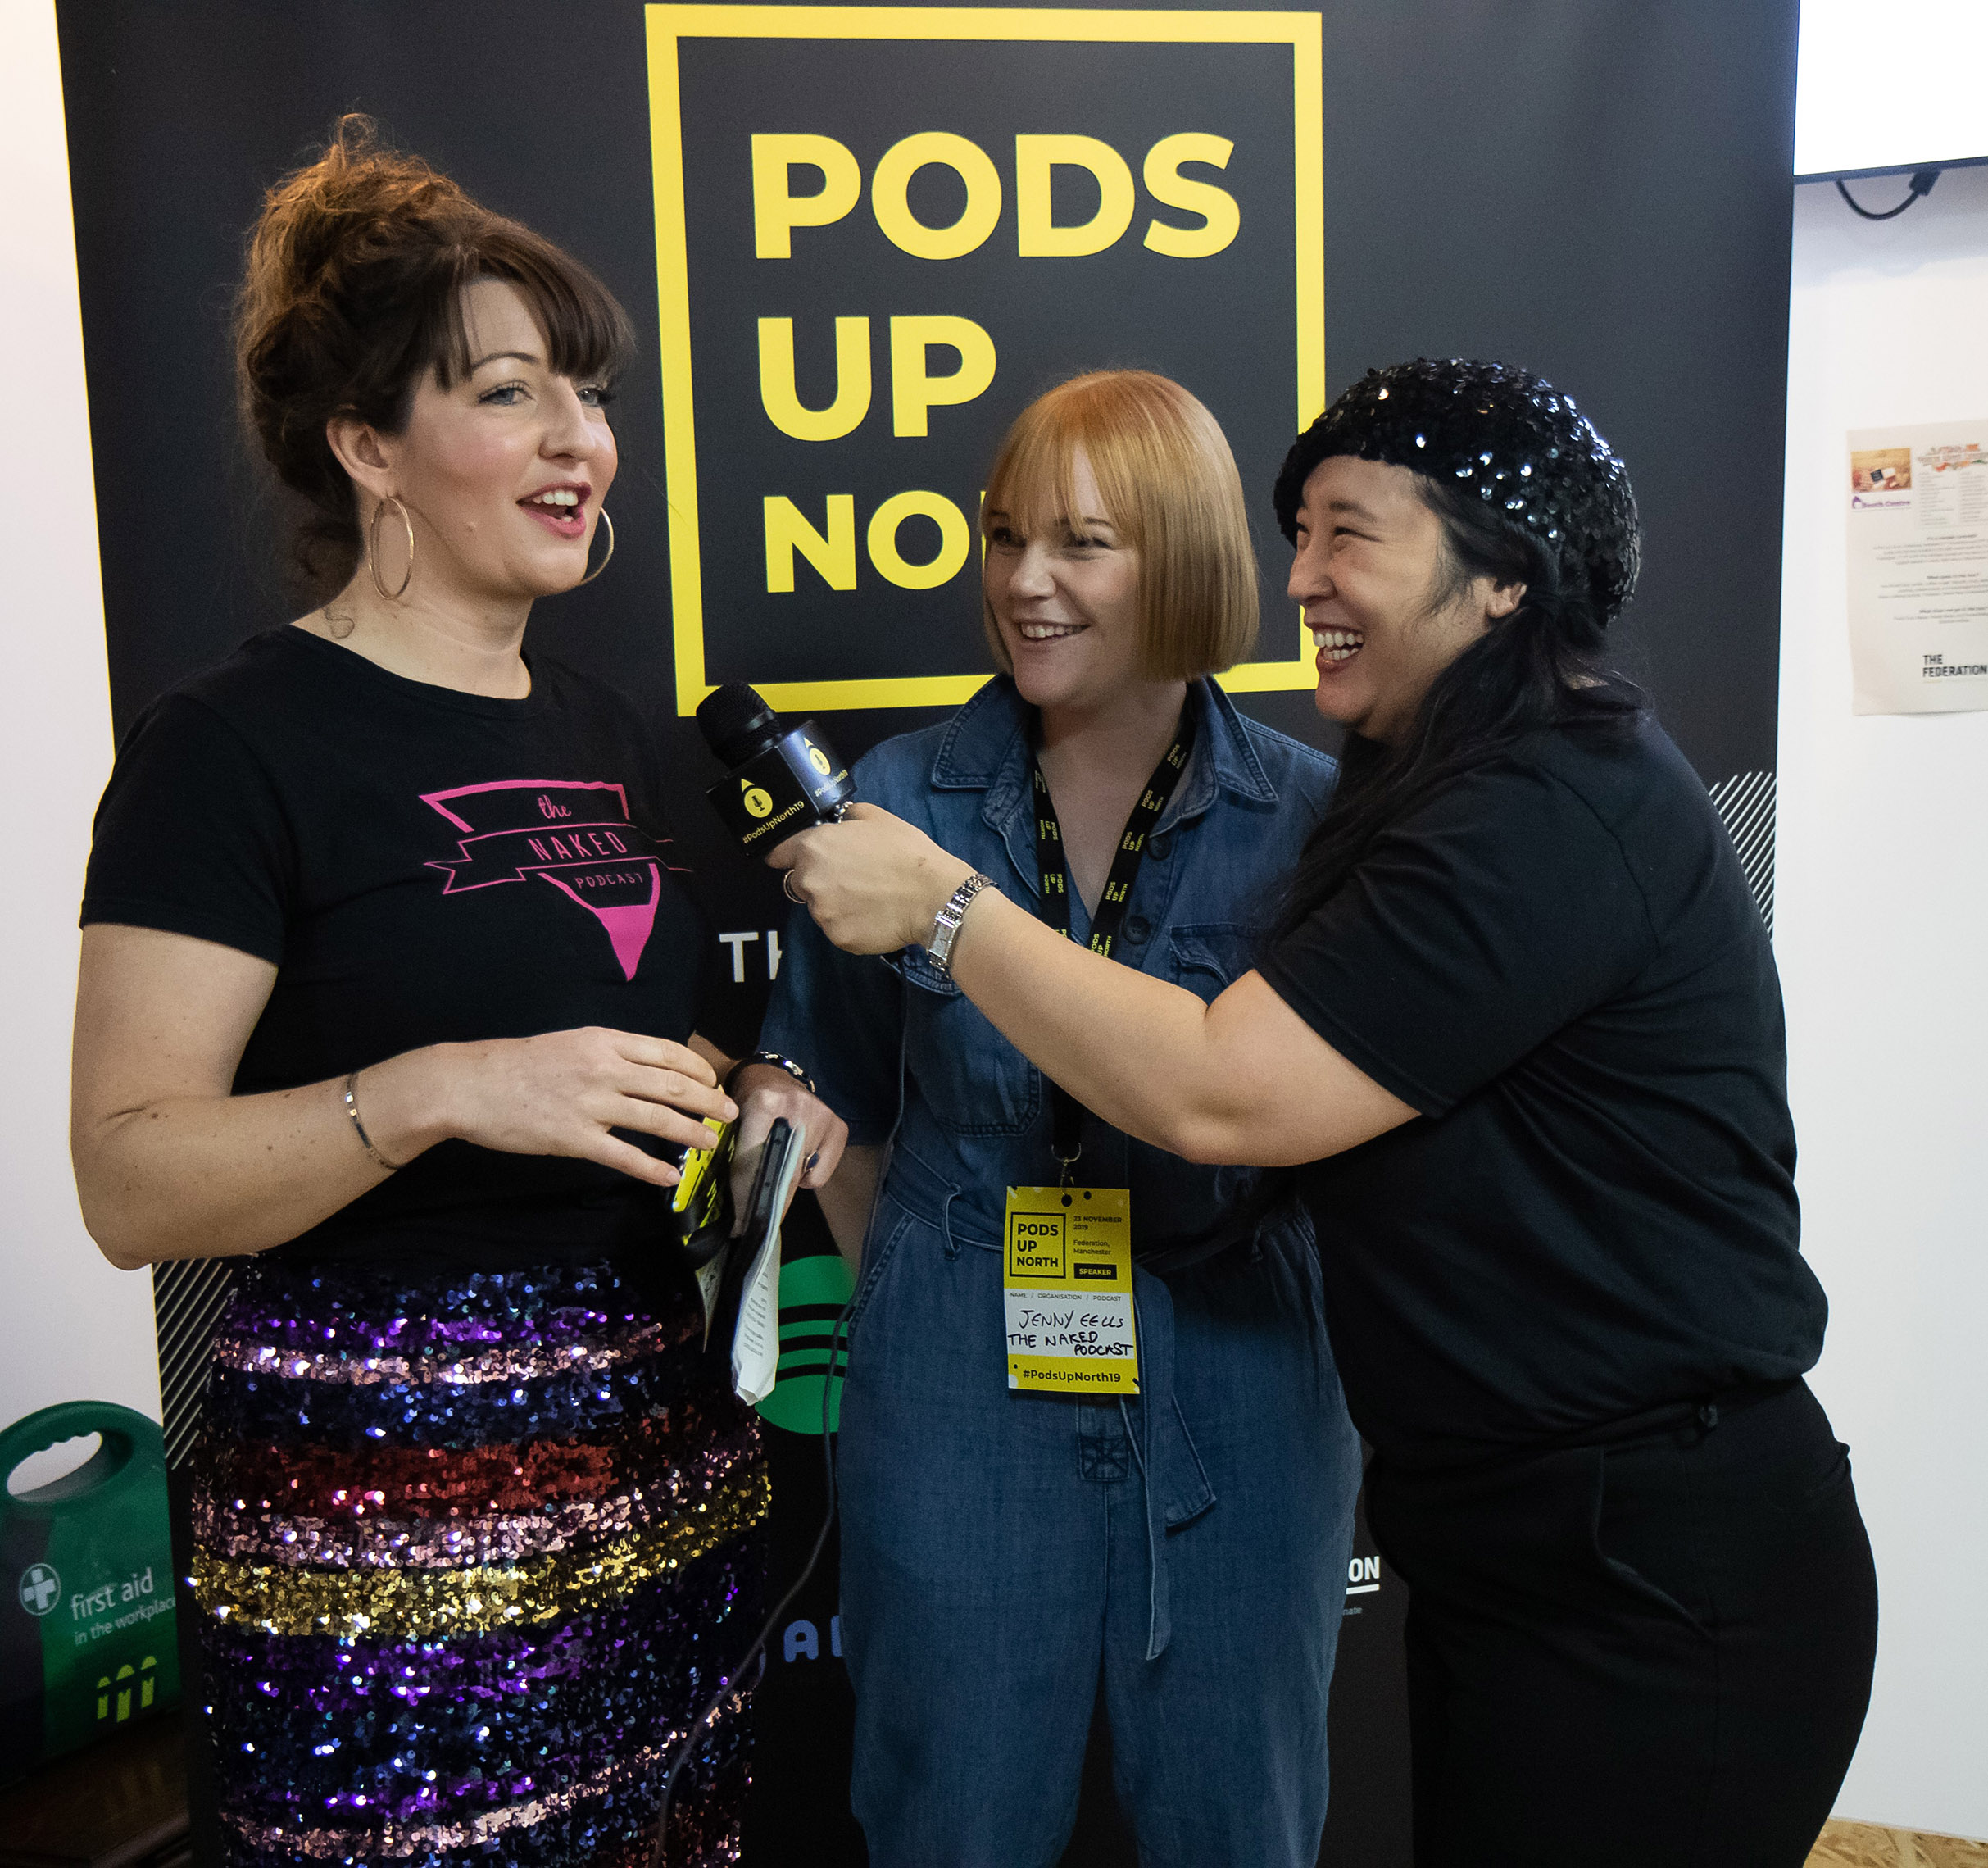 a photo of 3 women. one is wearing a hat and holding a microphone up to the mouth of one of the women as if to interview her